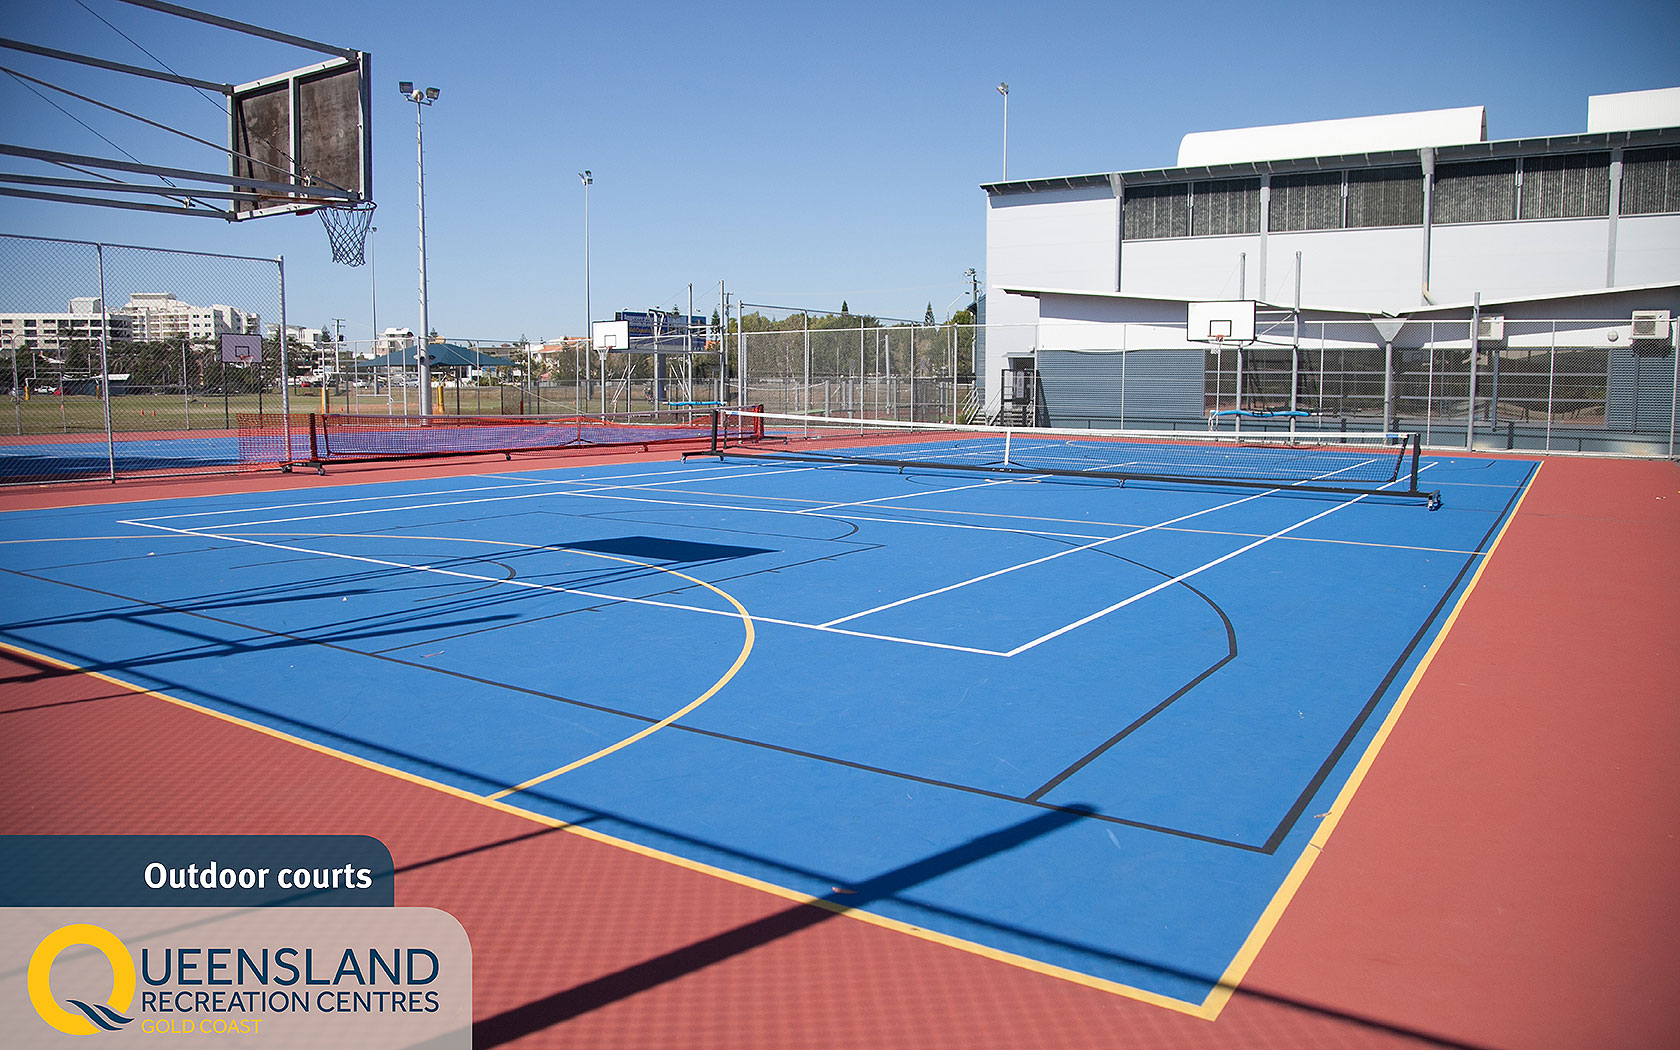 Fence-enclosed outdoor courts with multi-sport line markings set up for tennis at the Gold Coast Recreation Centre